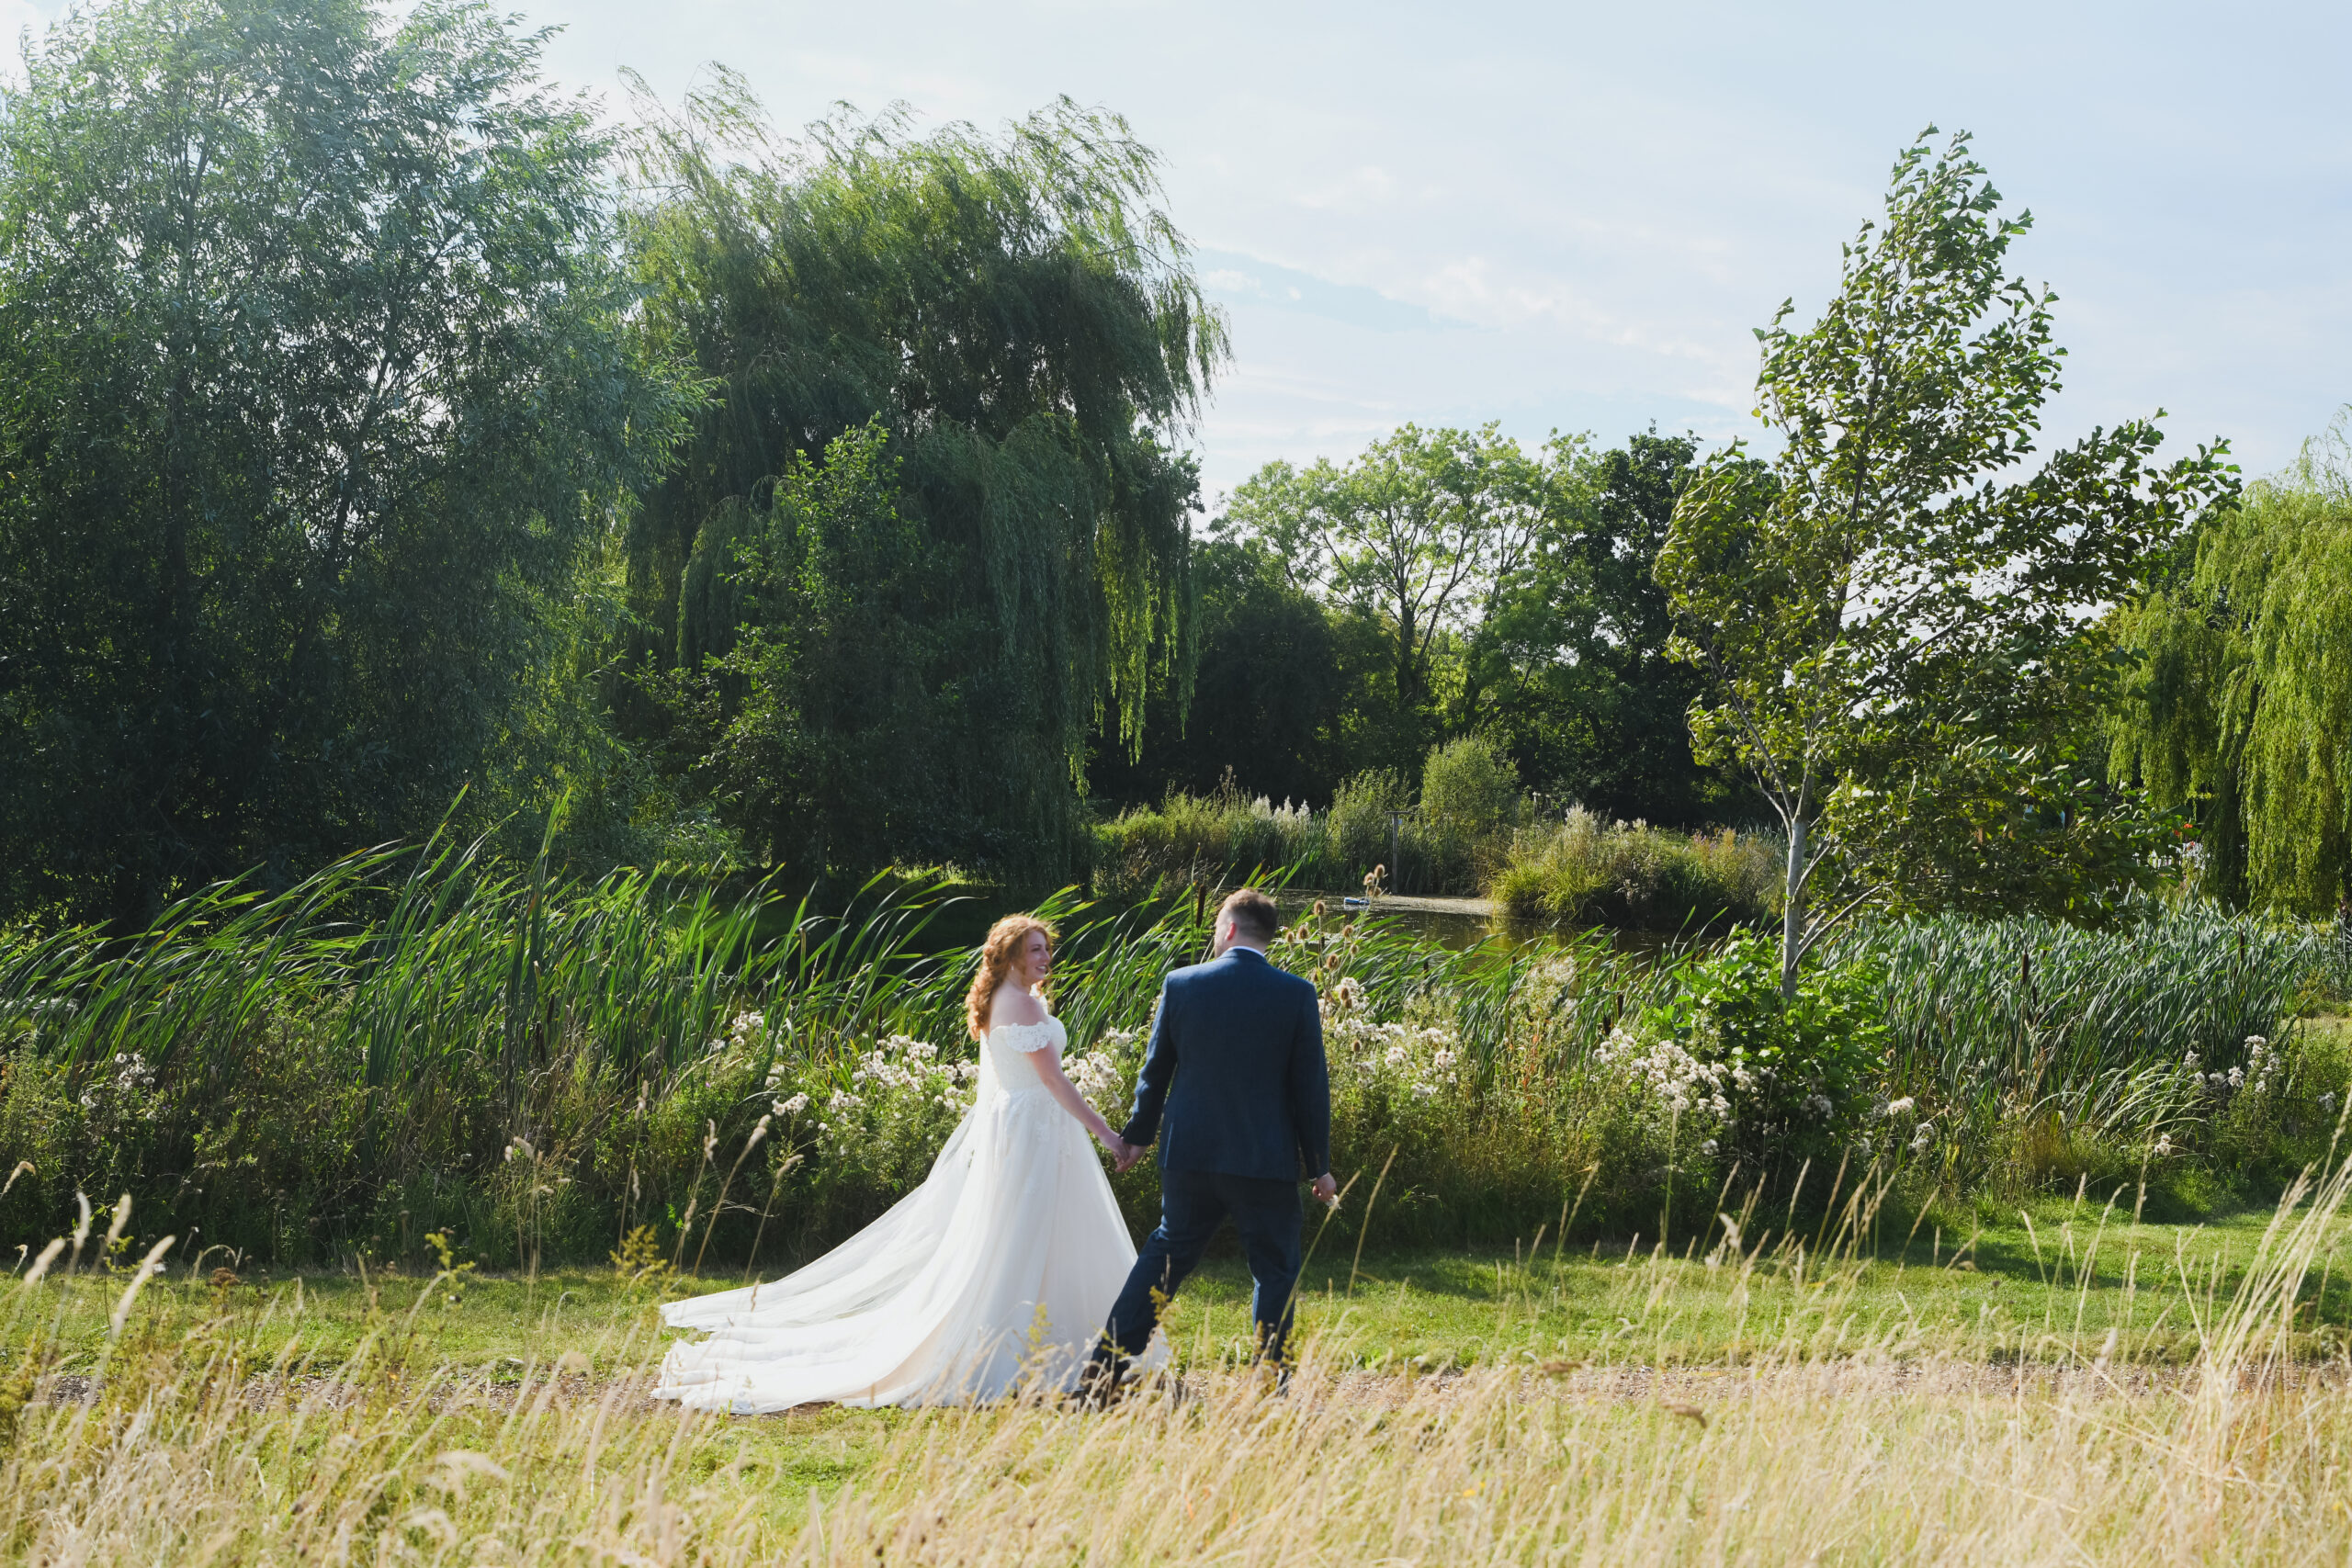 Wedding Photography in the grounds at Wootton Park